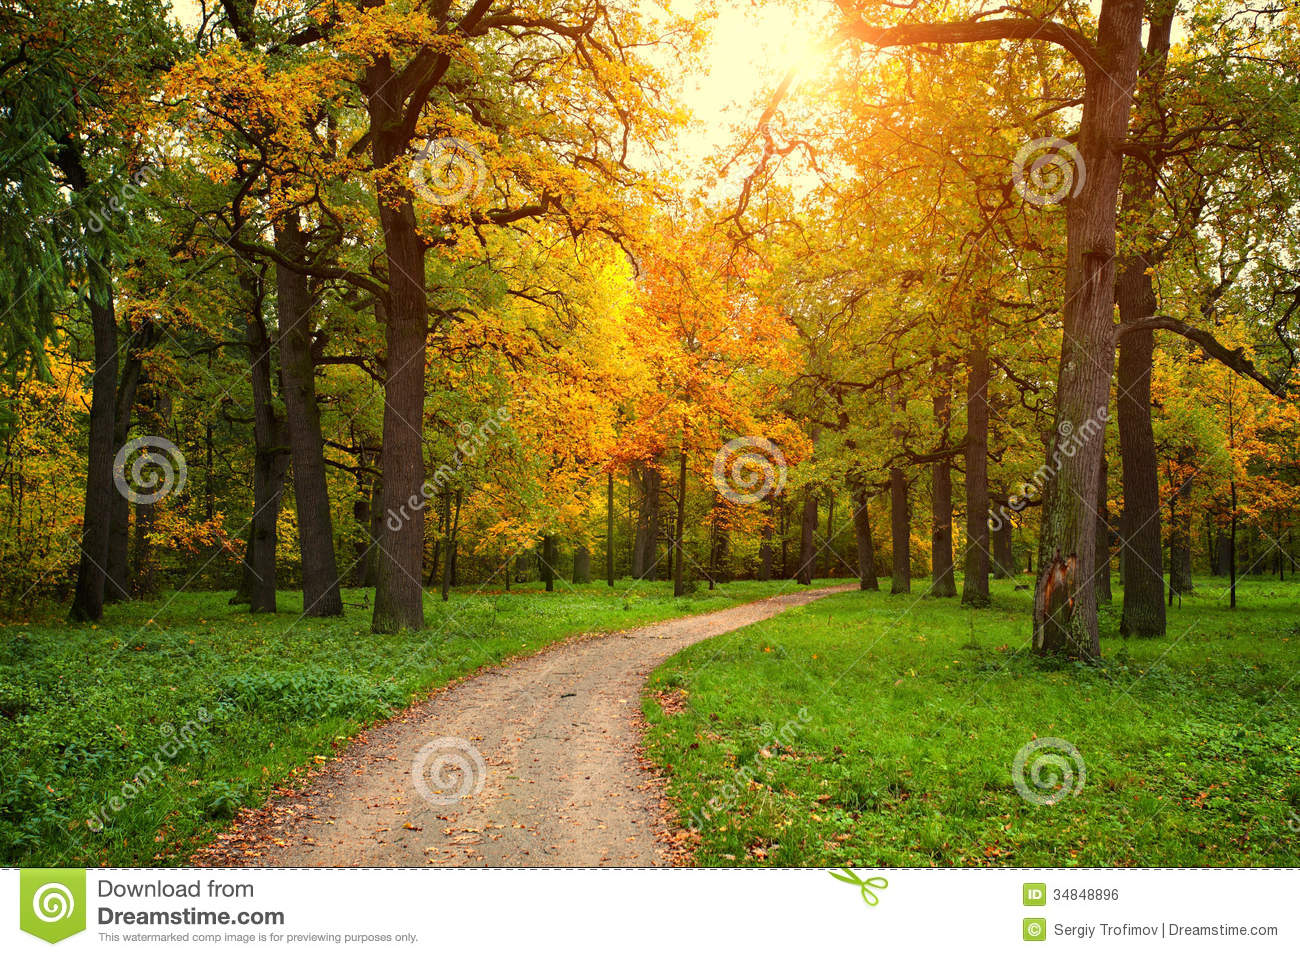 Free Fall Wallpaper With Animals Fall Season In Park With Pathway Royalty Free Stock Image